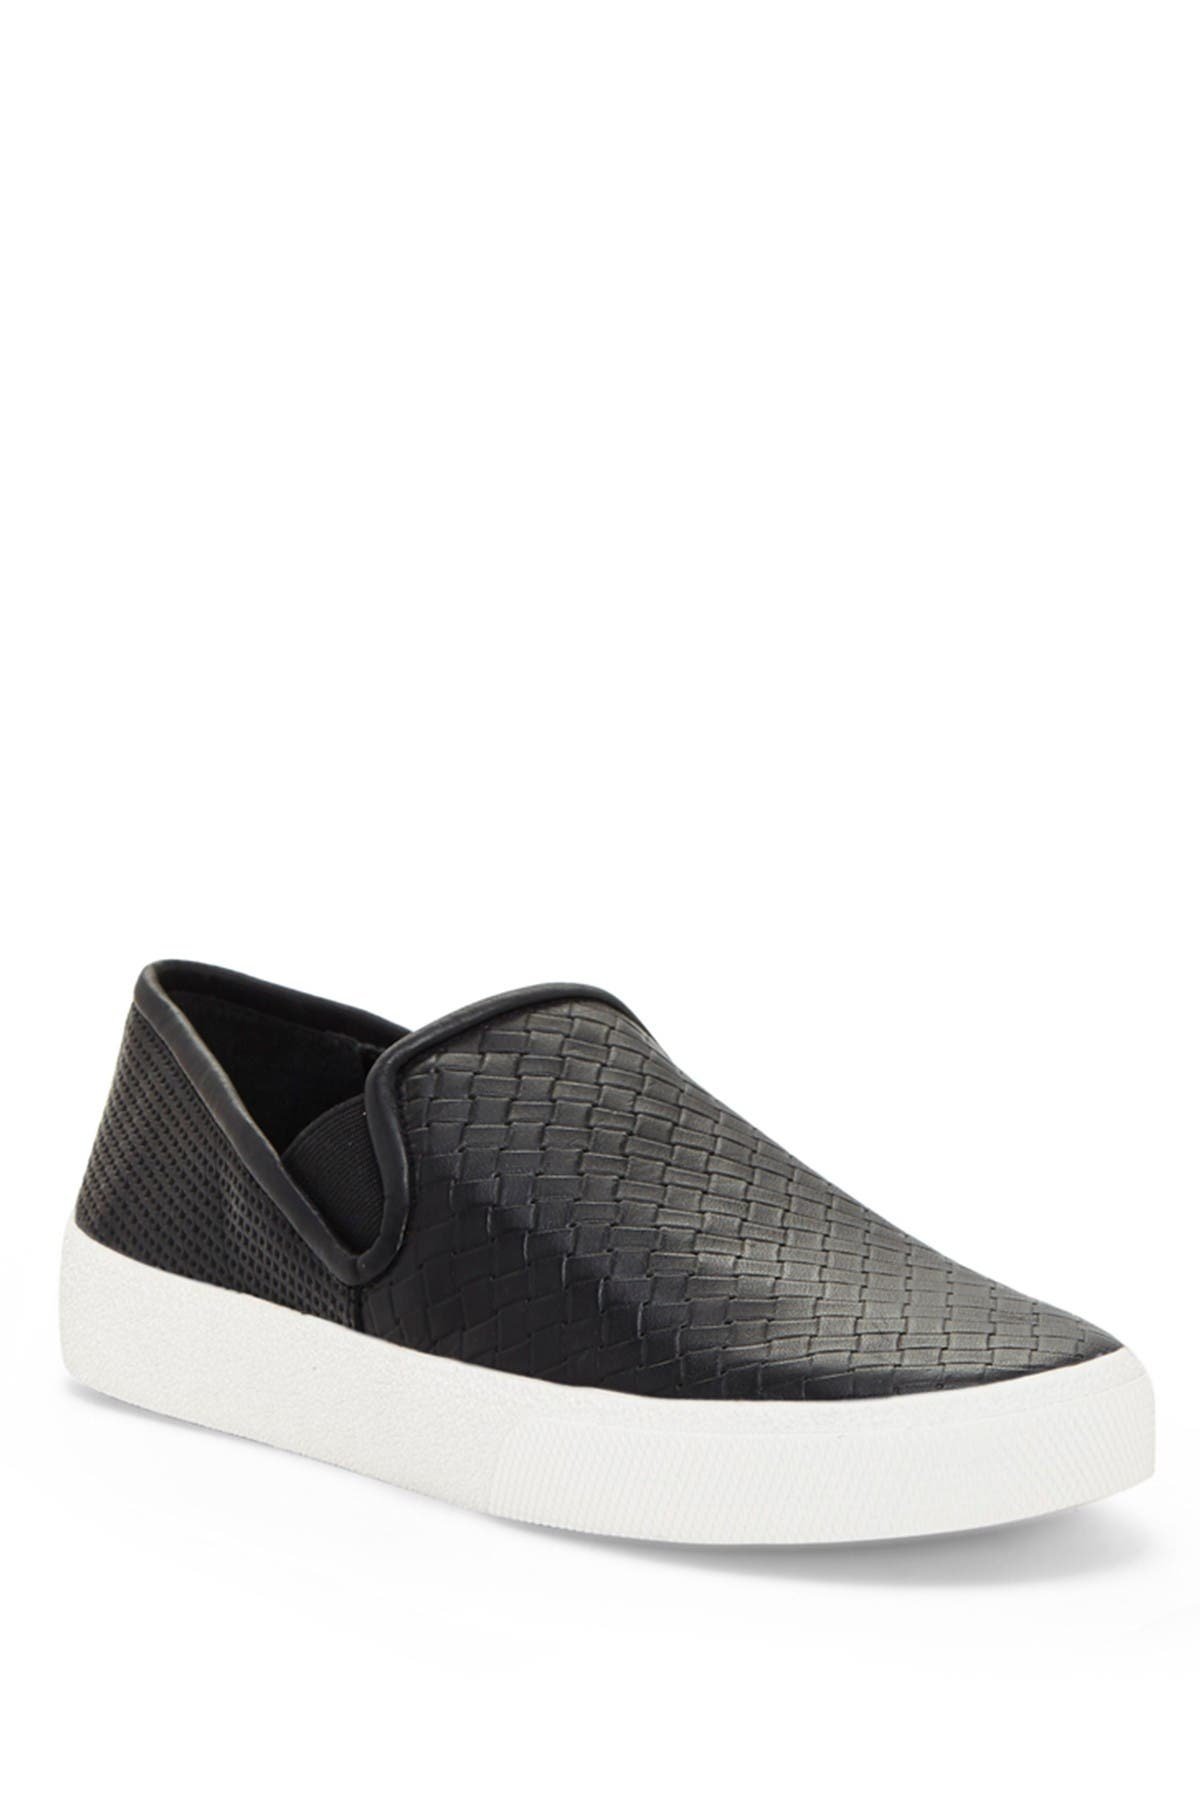 Vince Camuto | Cariana Leather Slip-On